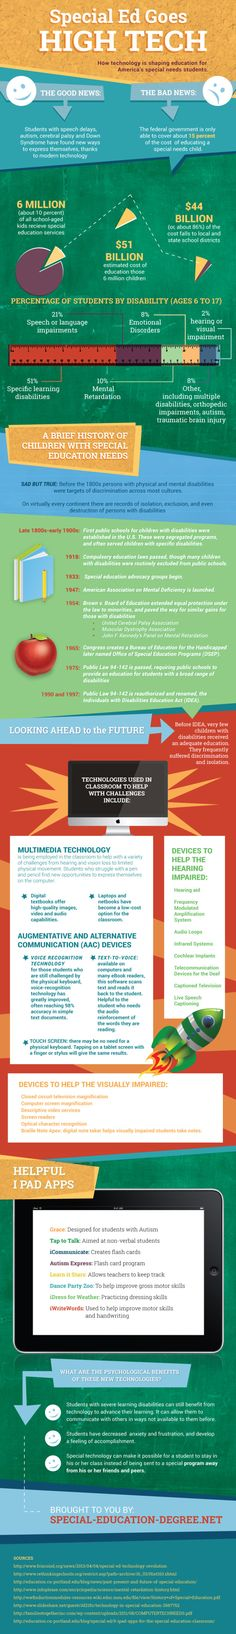 Special Ed Goes High Tech [INFOGRAPHIC]